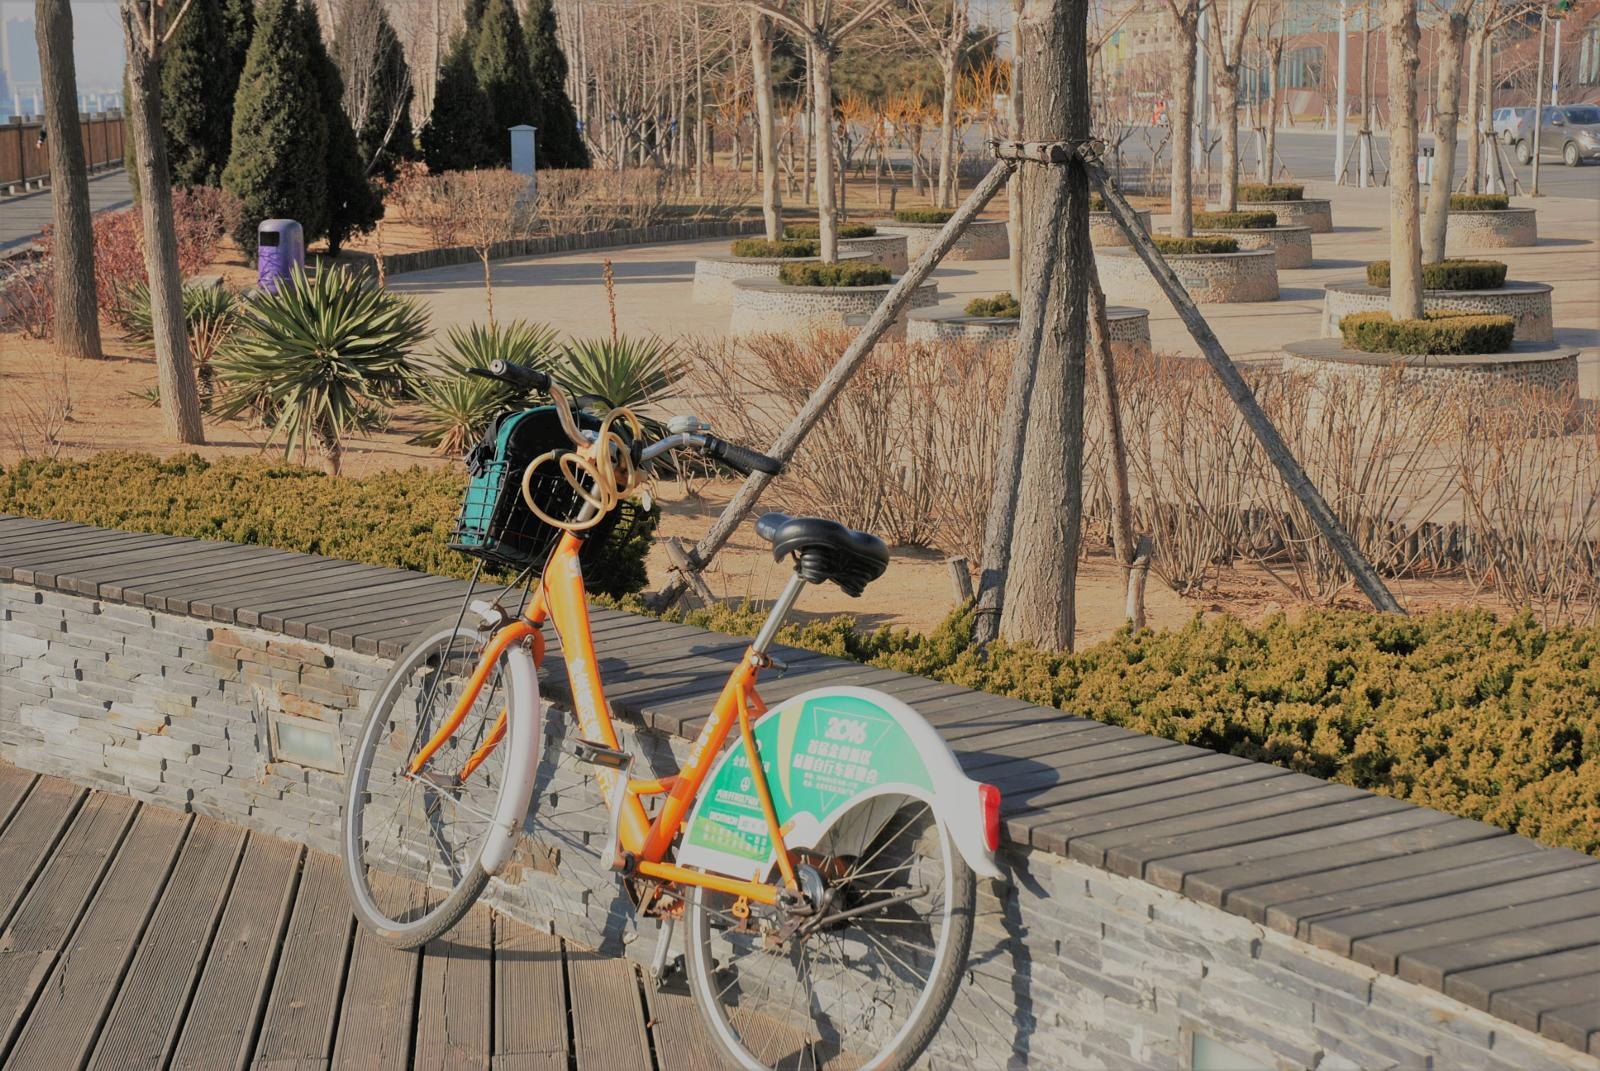 Фото Kaifaqu, Liaoning Province, PRC - Bicycle the Dalian Green-way (West part)